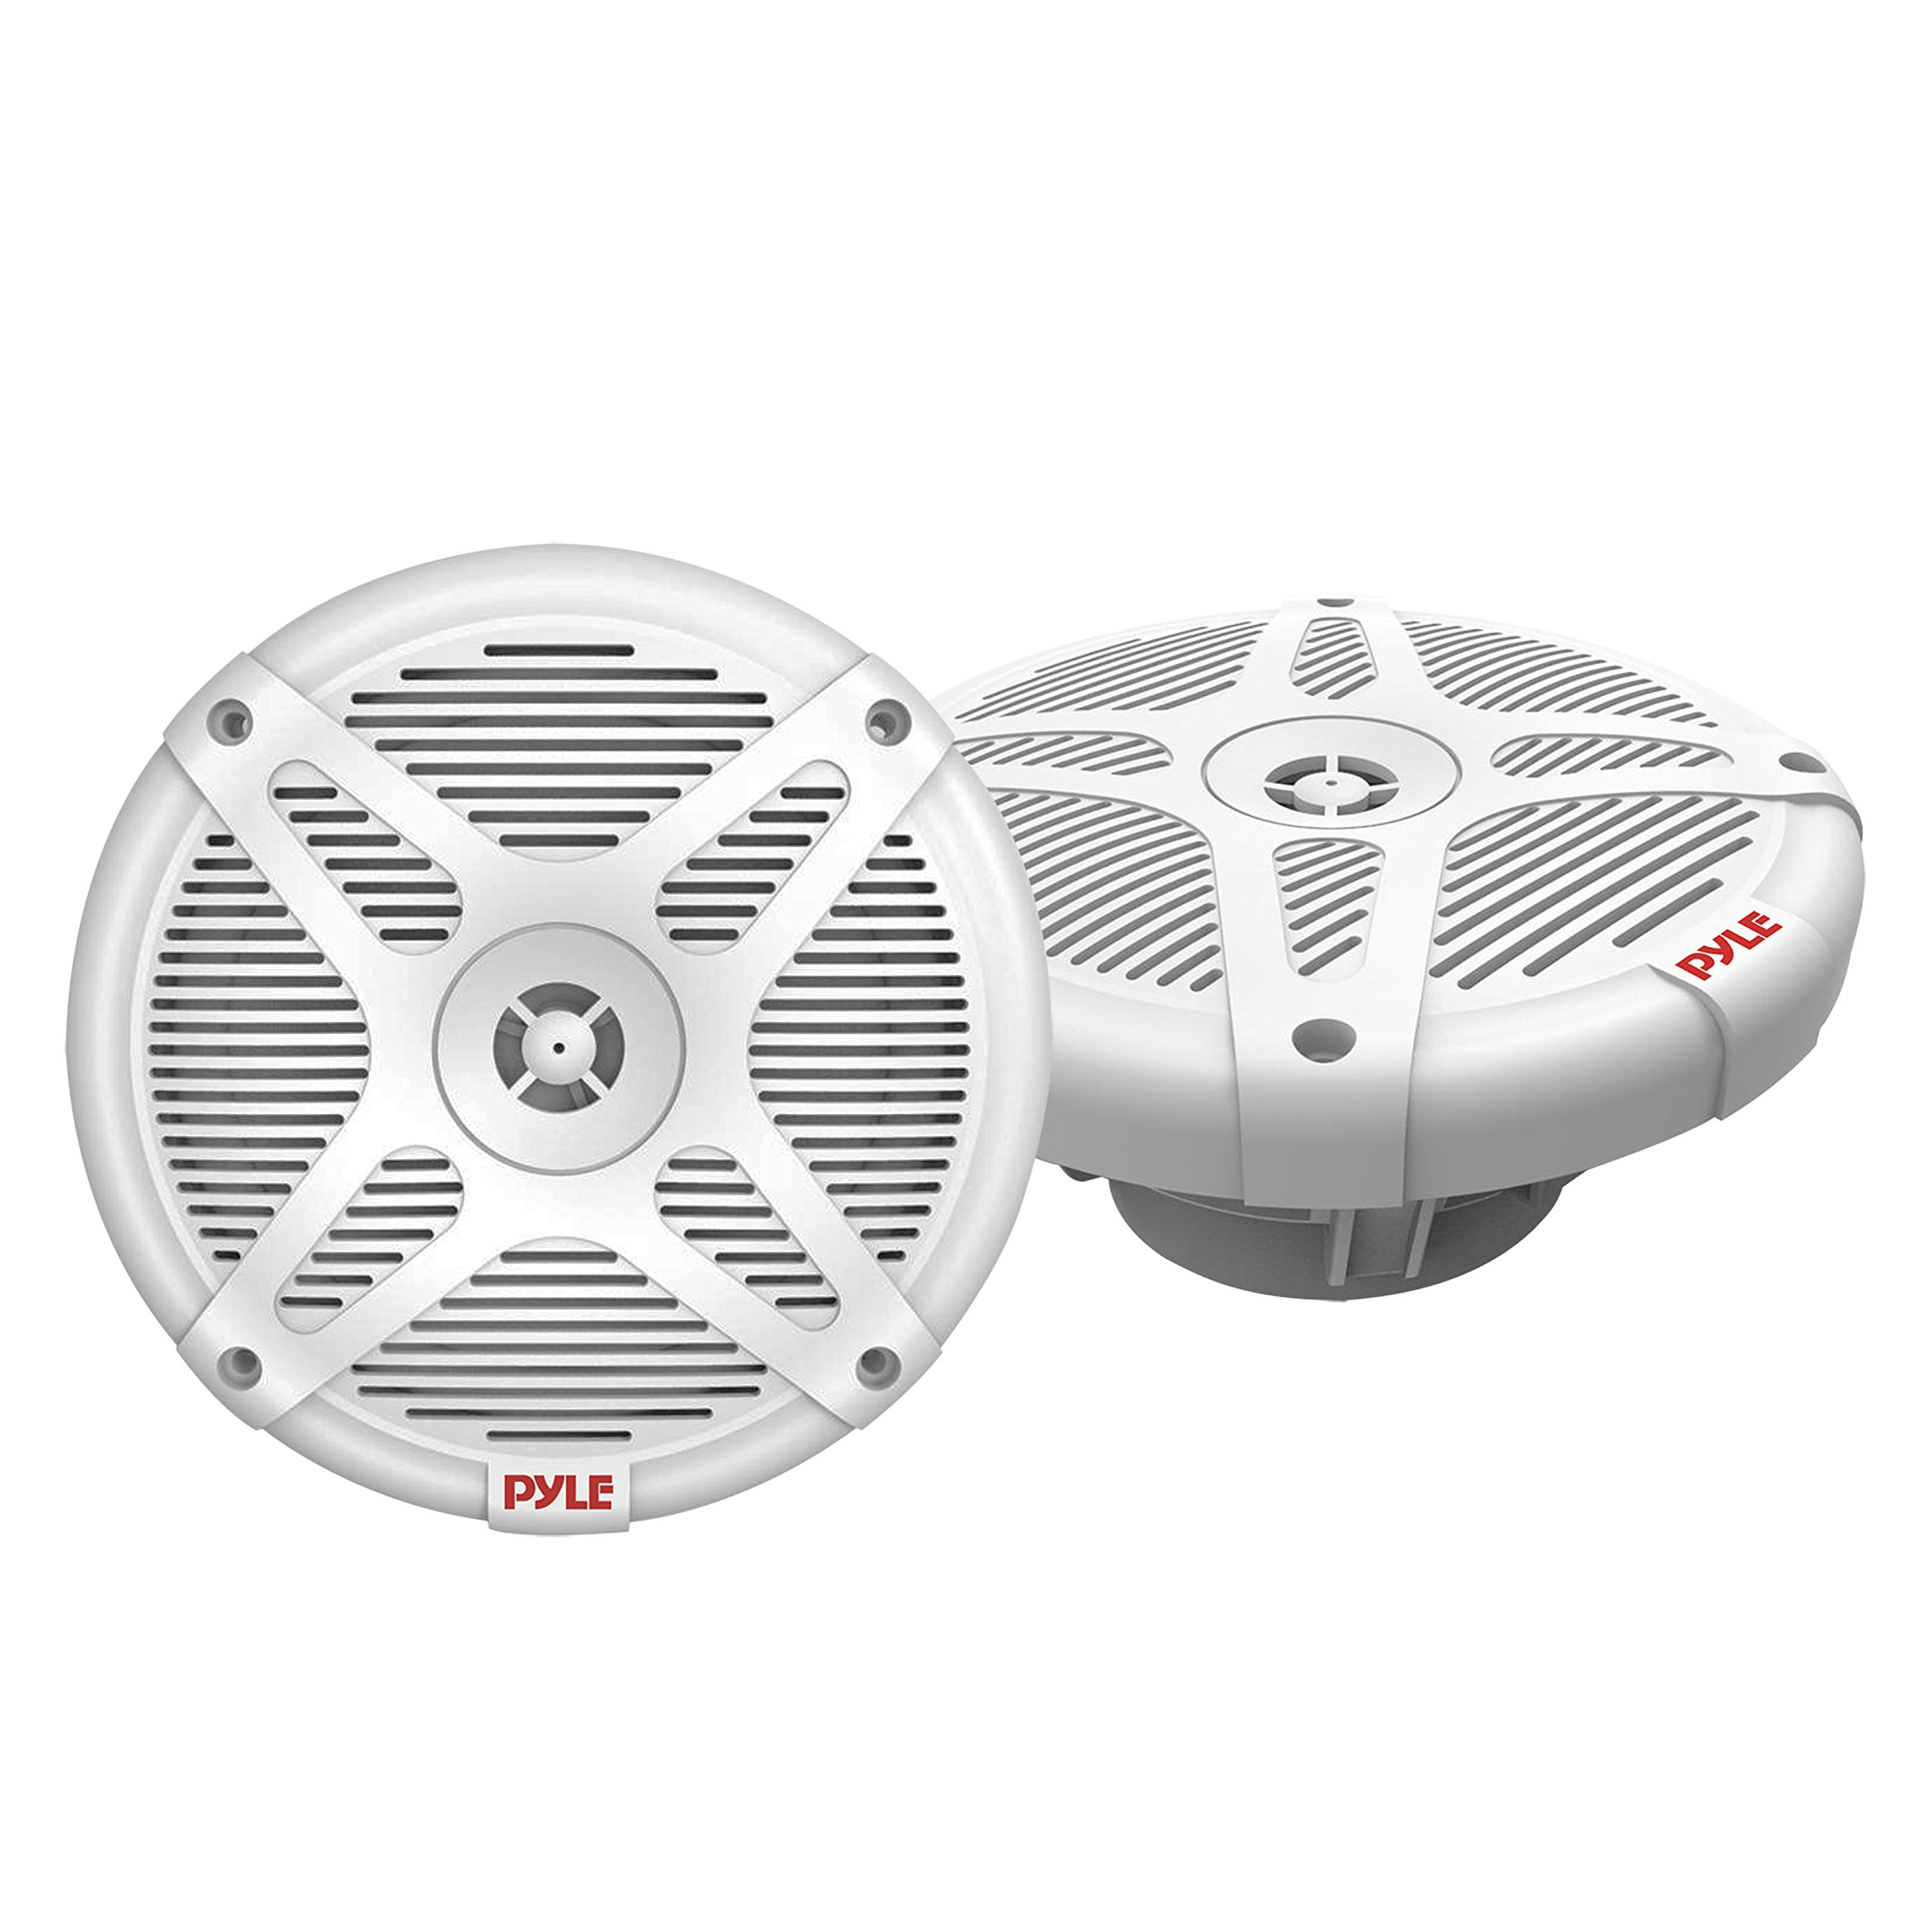 6.5 Inch Marine Speakers (Pair) - 2-way IP-X4 Waterproof and Weather Resistant Outdoor Audio Dual Stereo Sound System with 600 Watt Power and Low Profile Design - Pyle PLMR652W (White)